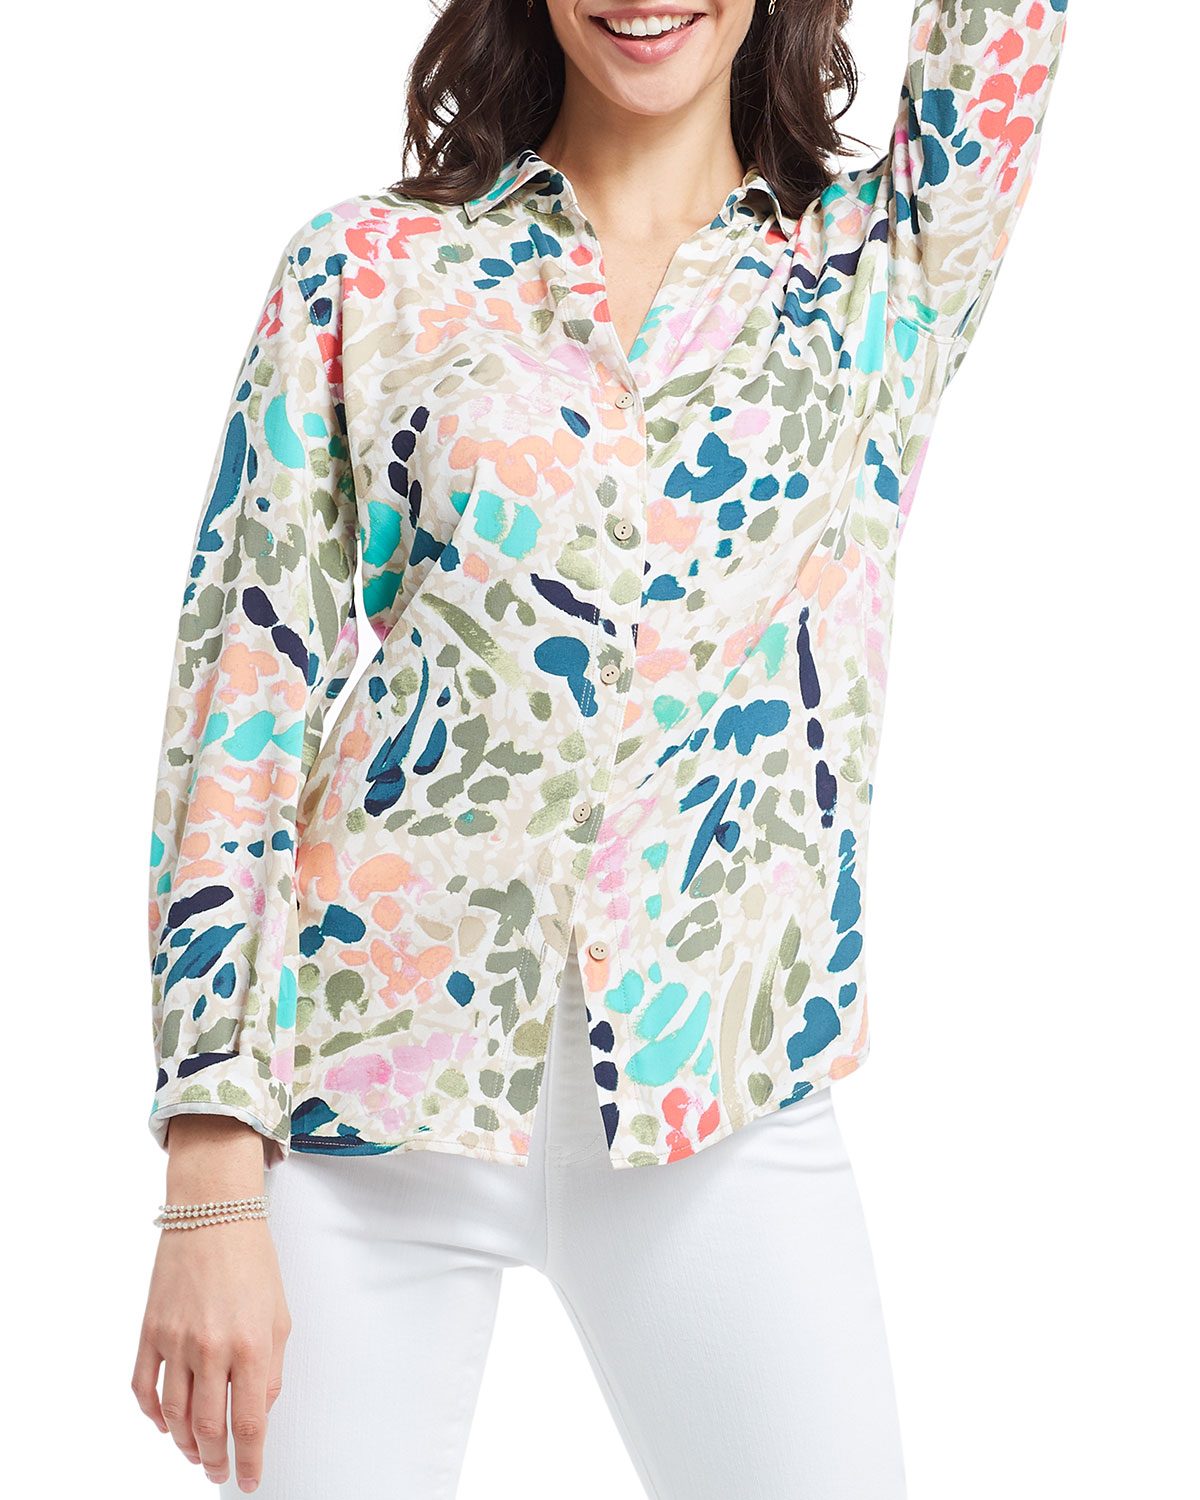 Nic + Zoe PLUS SIZE COLOR SPLASH BUTTON-DOWN SHIRT